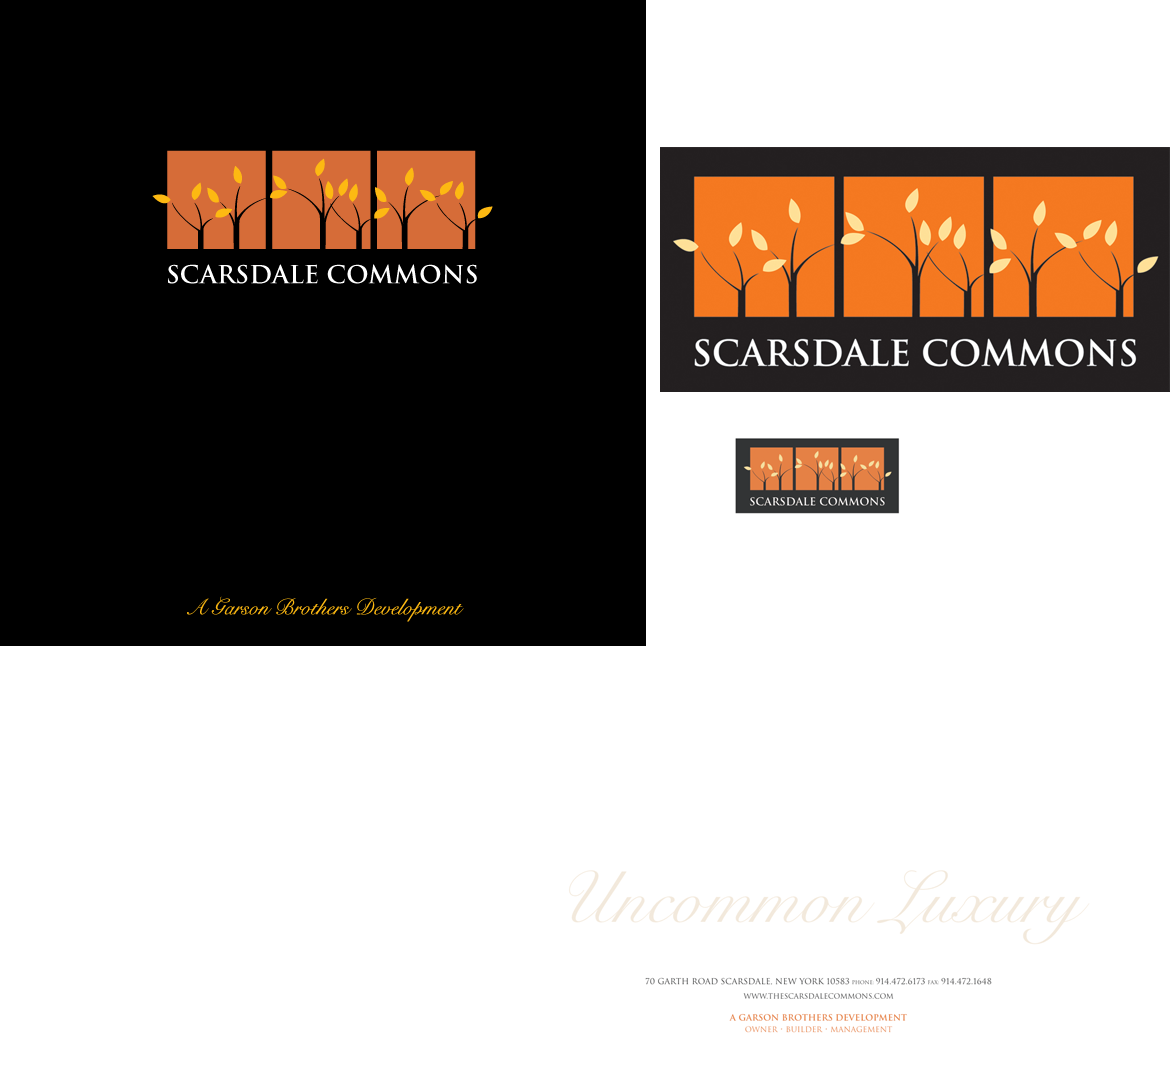 ScarsdaleCommons